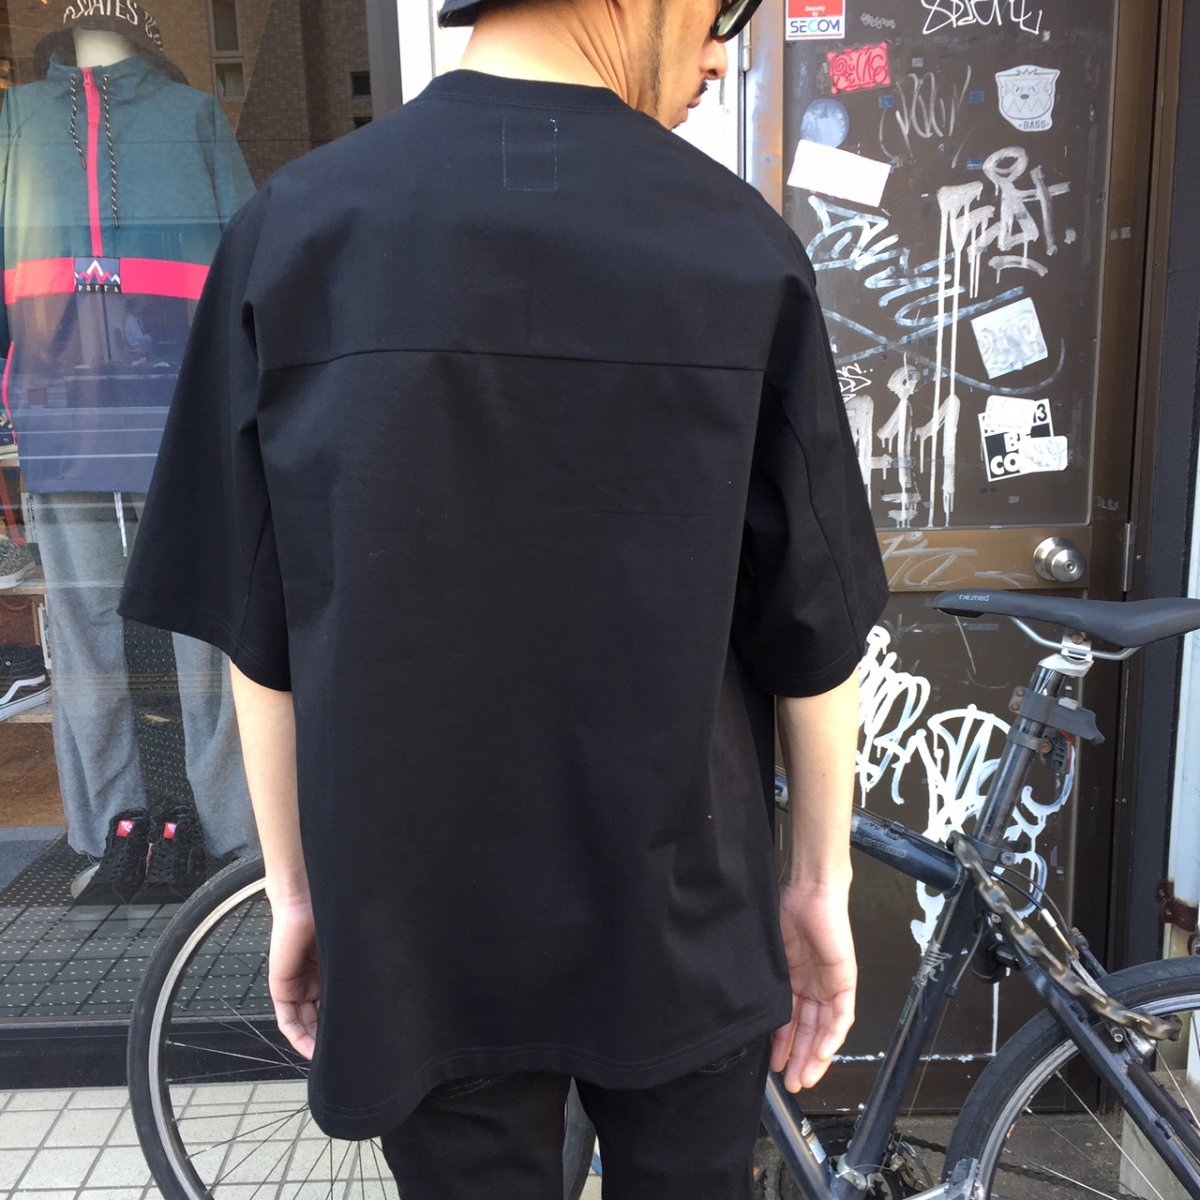 <img class='new_mark_img1' src='https://img.shop-pro.jp/img/new/icons3.gif' style='border:none;display:inline;margin:0px;padding:0px;width:auto;' />Name.  ネーム / Tシャツ PRINT HALF SLEEVE TEE 【BLACK】